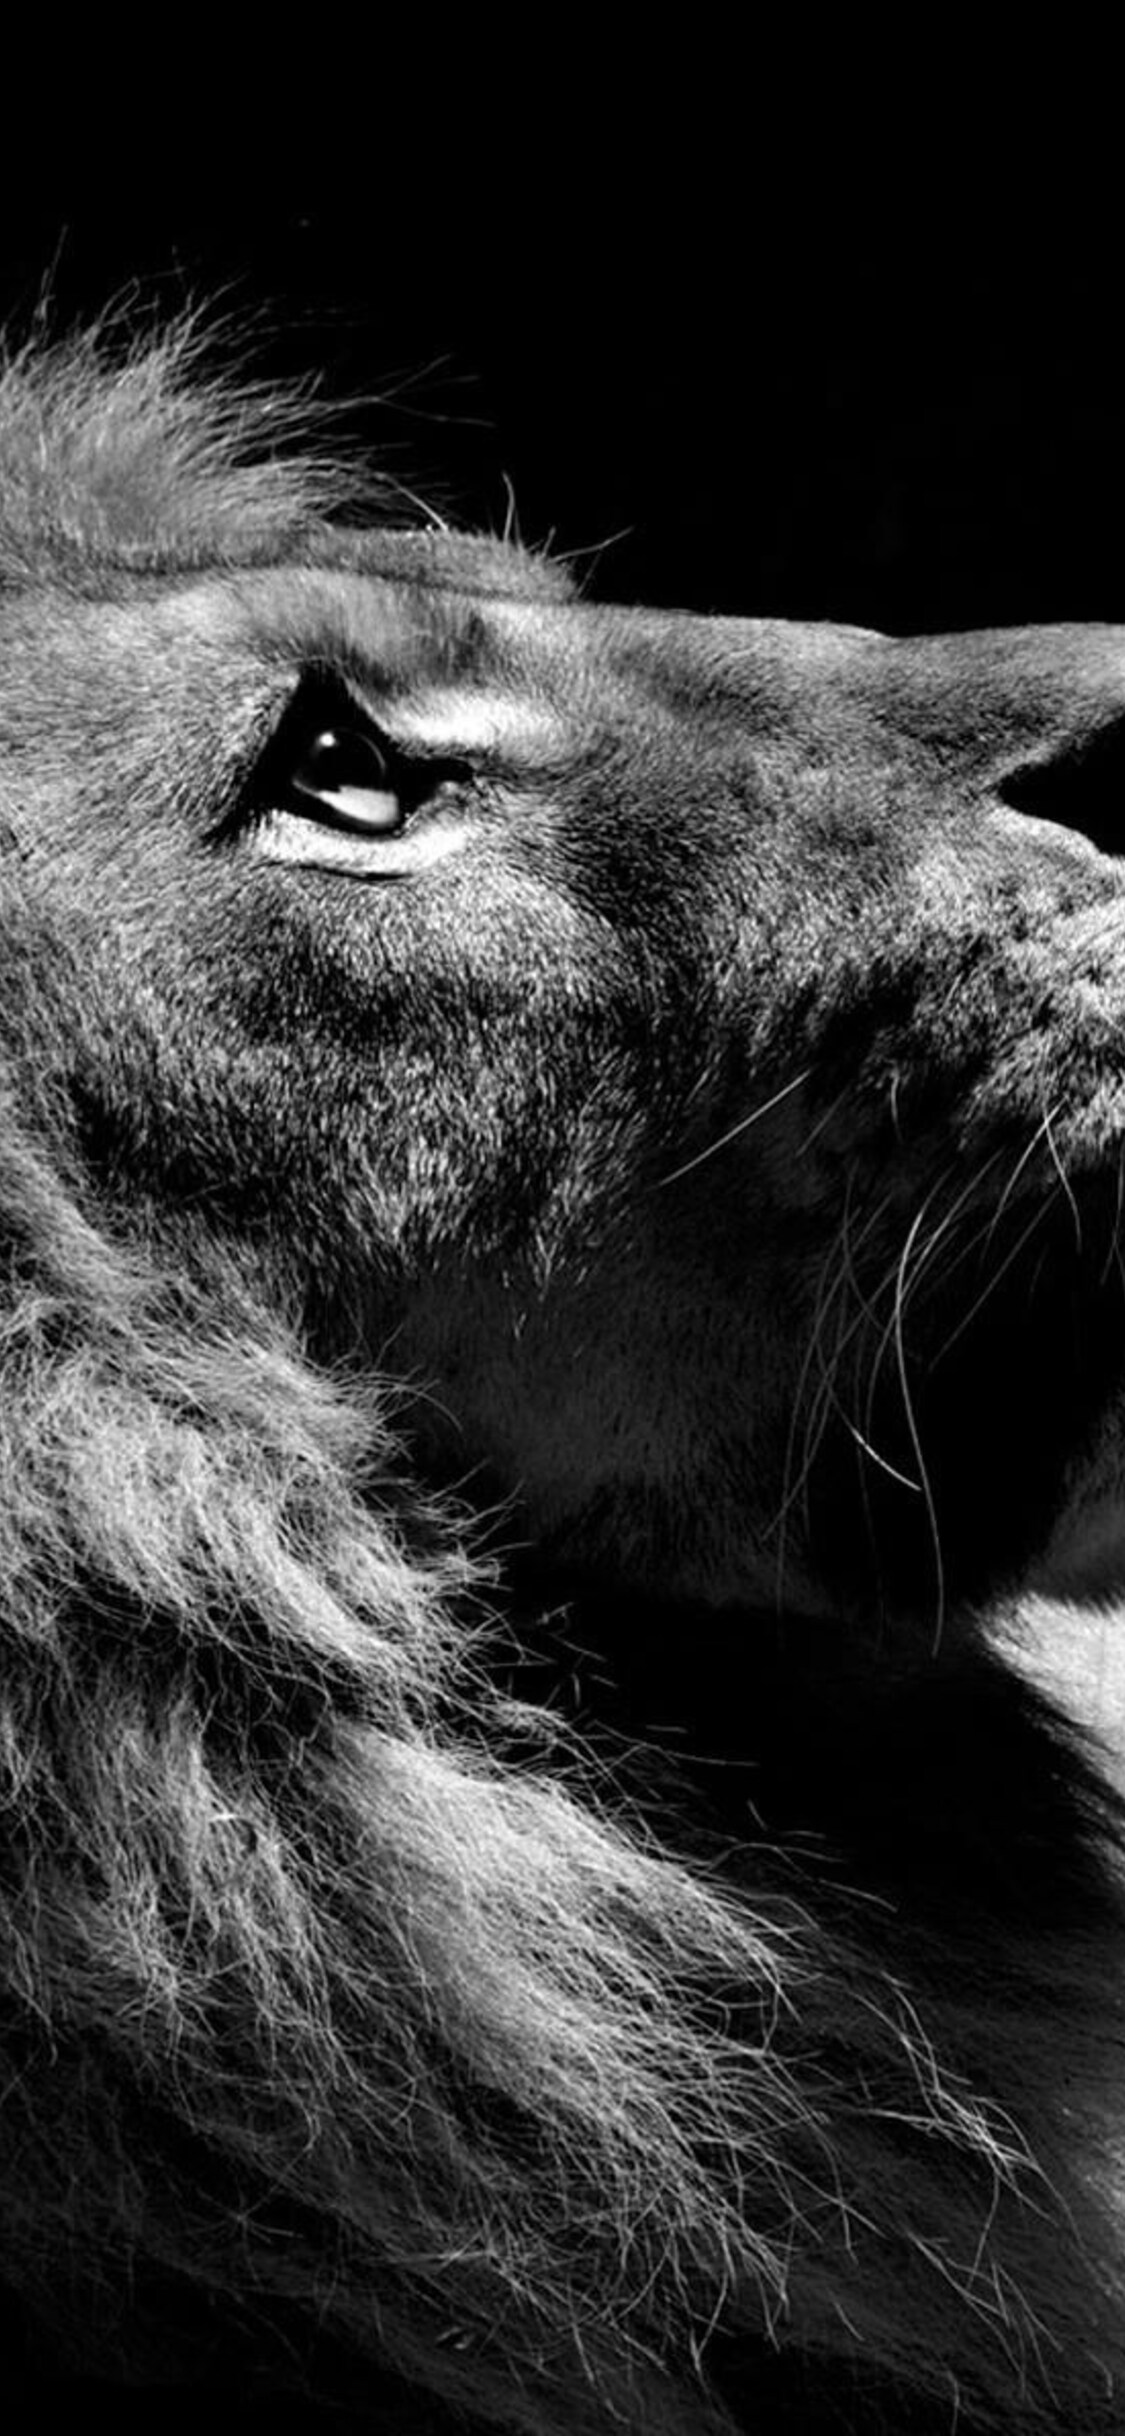 1125x2436 Lion Black And White Iphone XS,Iphone 10,Iphone ...